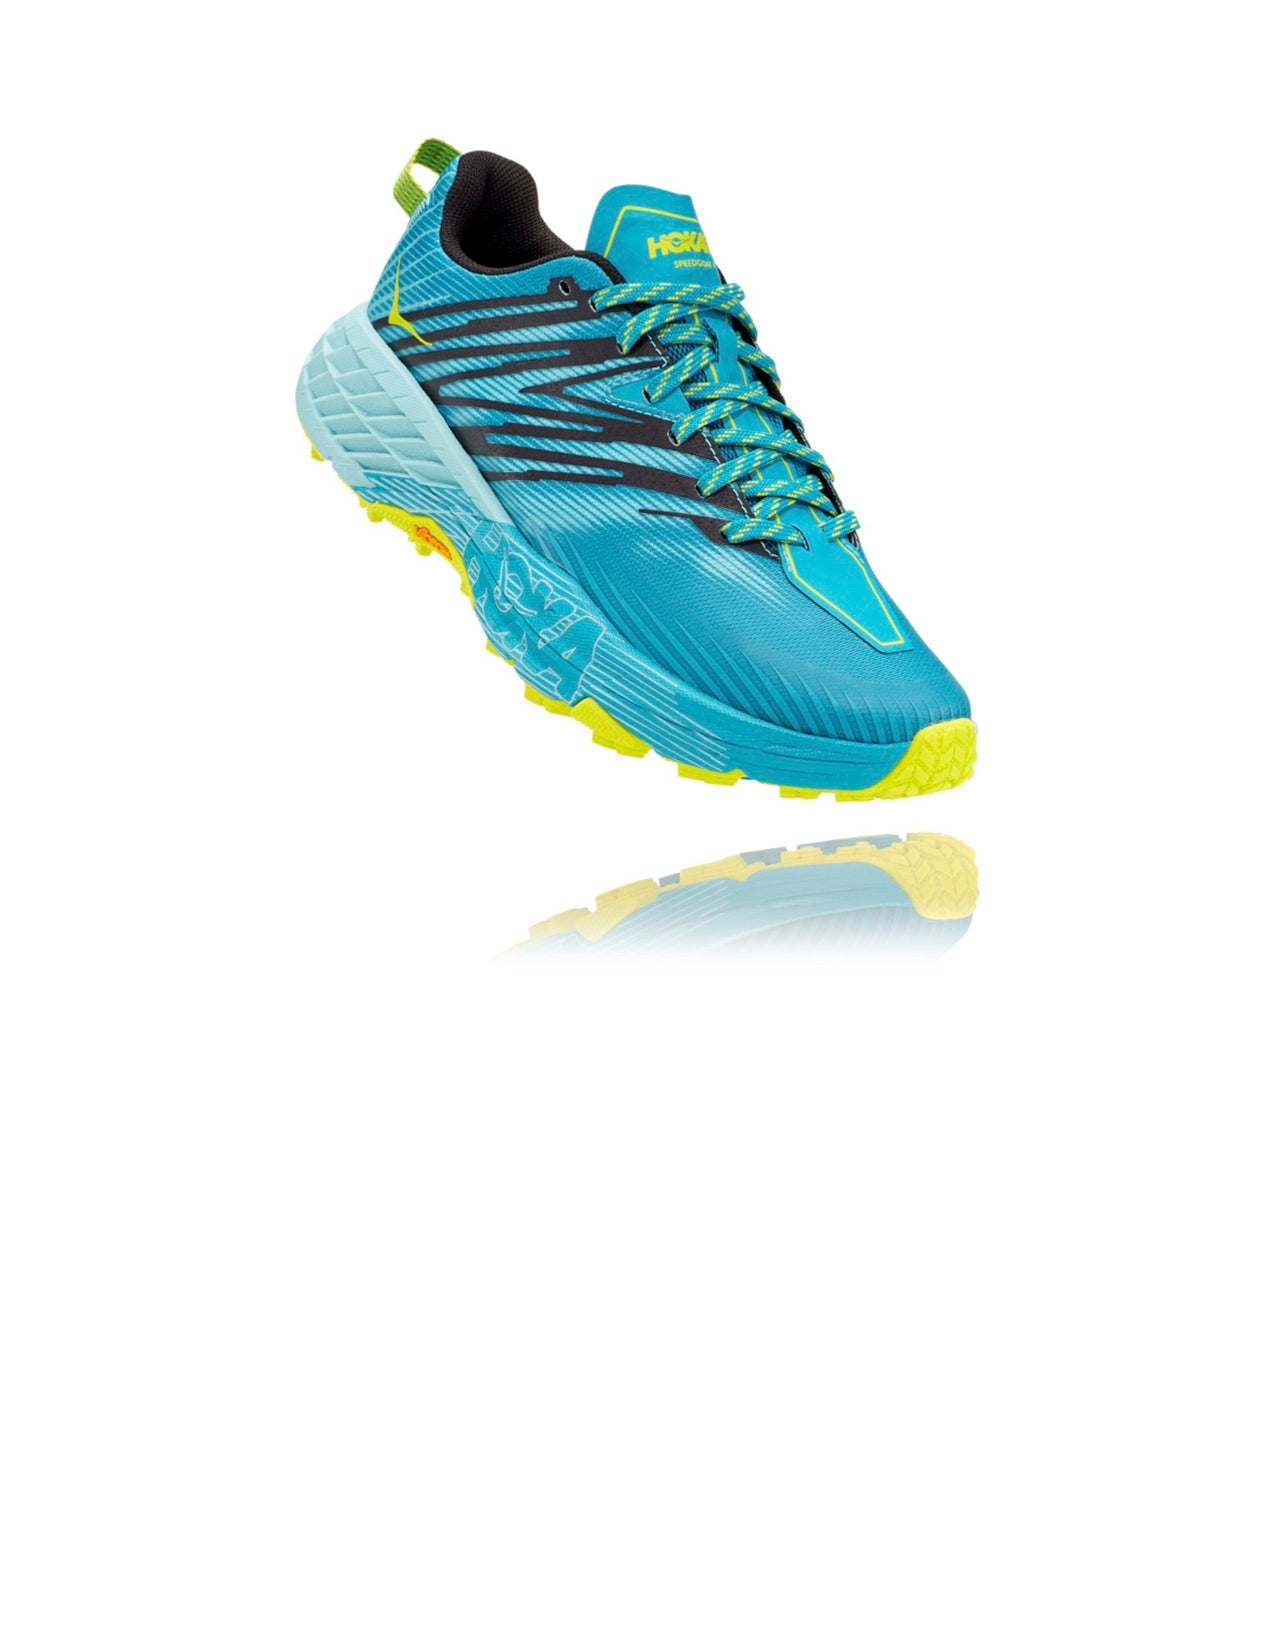 Women's Speedgoat 4 (CBAB - capri breeze/angel blue)